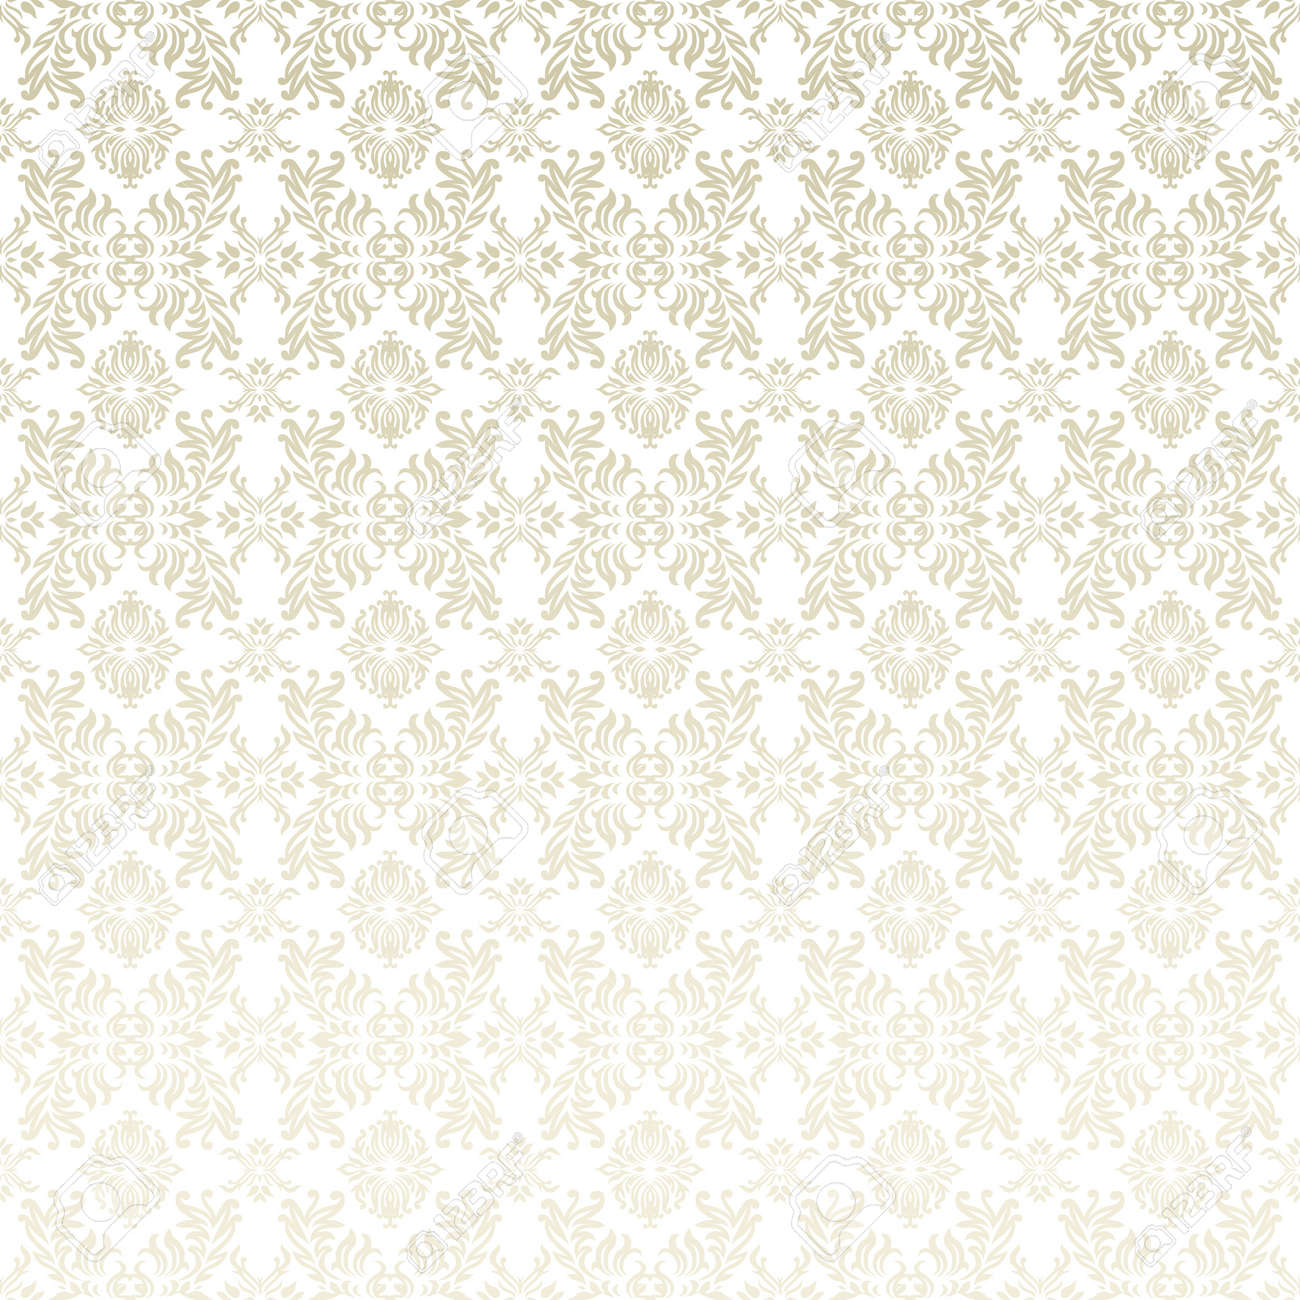 Classic gothic floral wallpaper background pattern in white and beige - 8031192